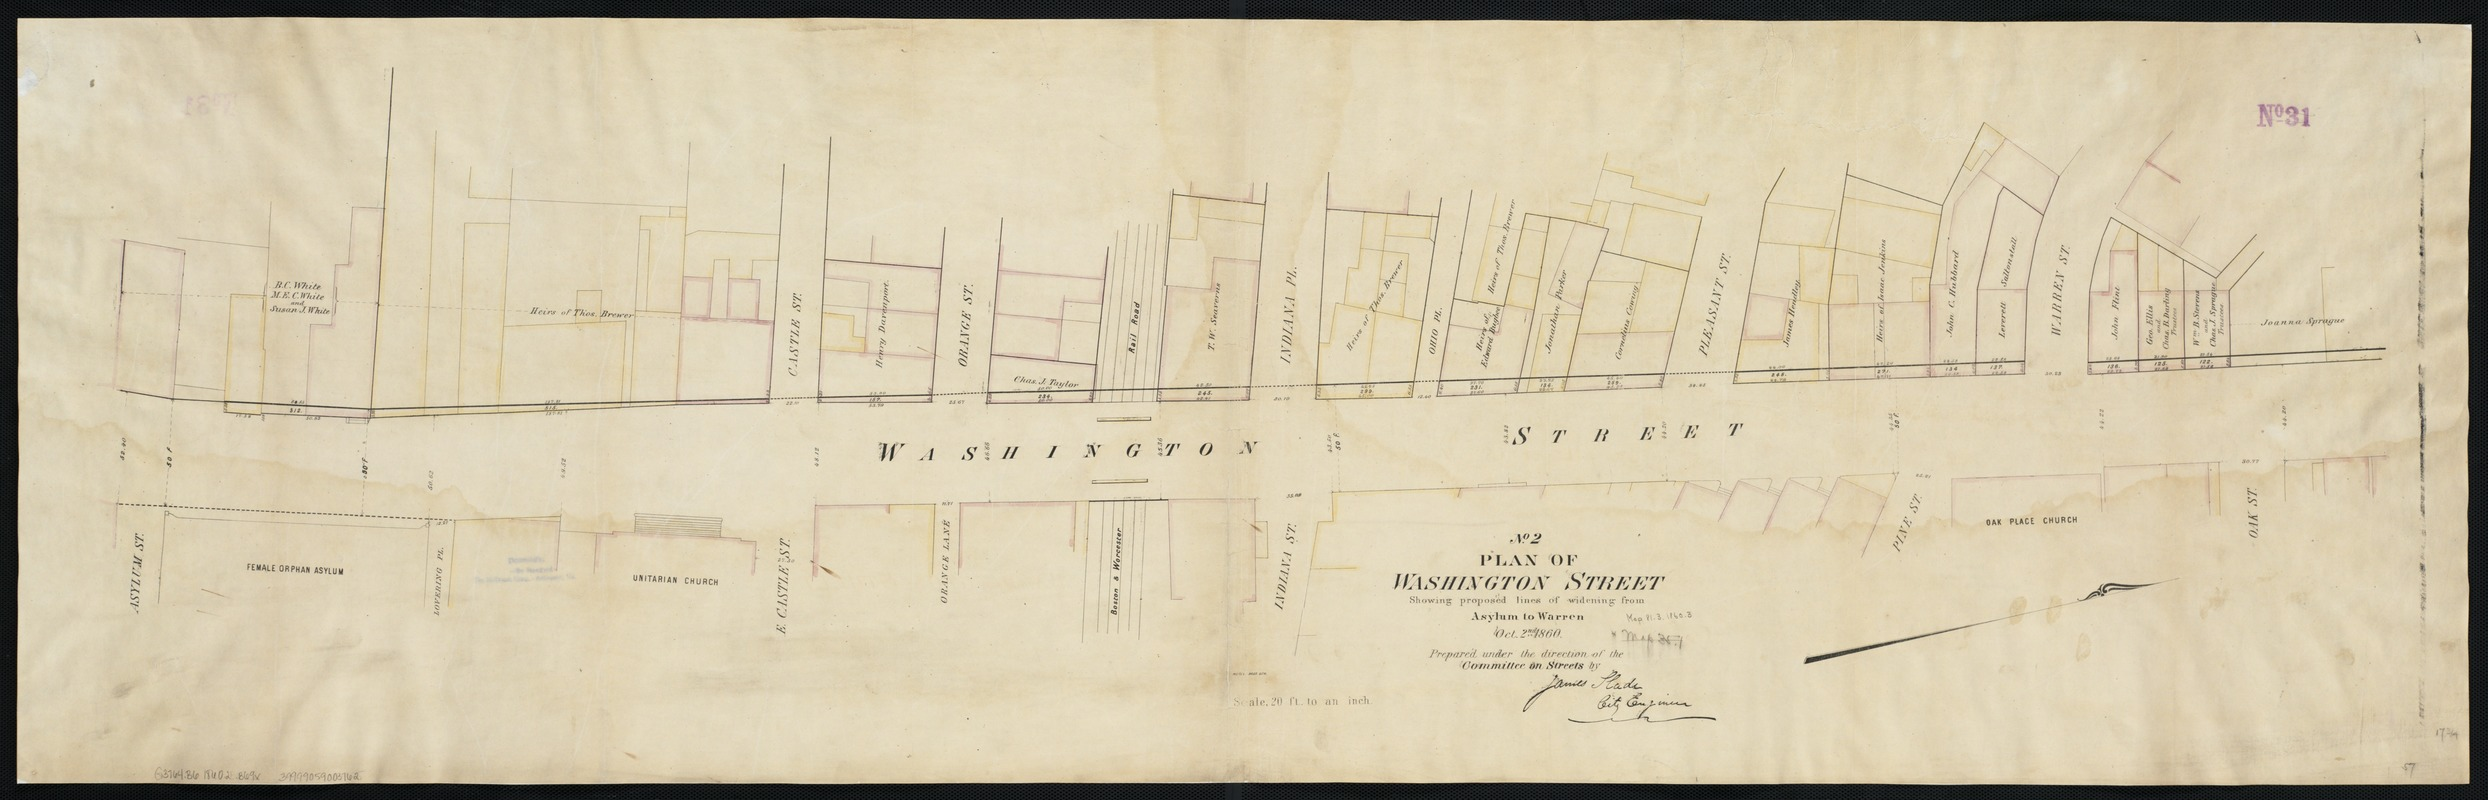 Plan of Washington Street showing proposed lines of widening from Asylum to Warren